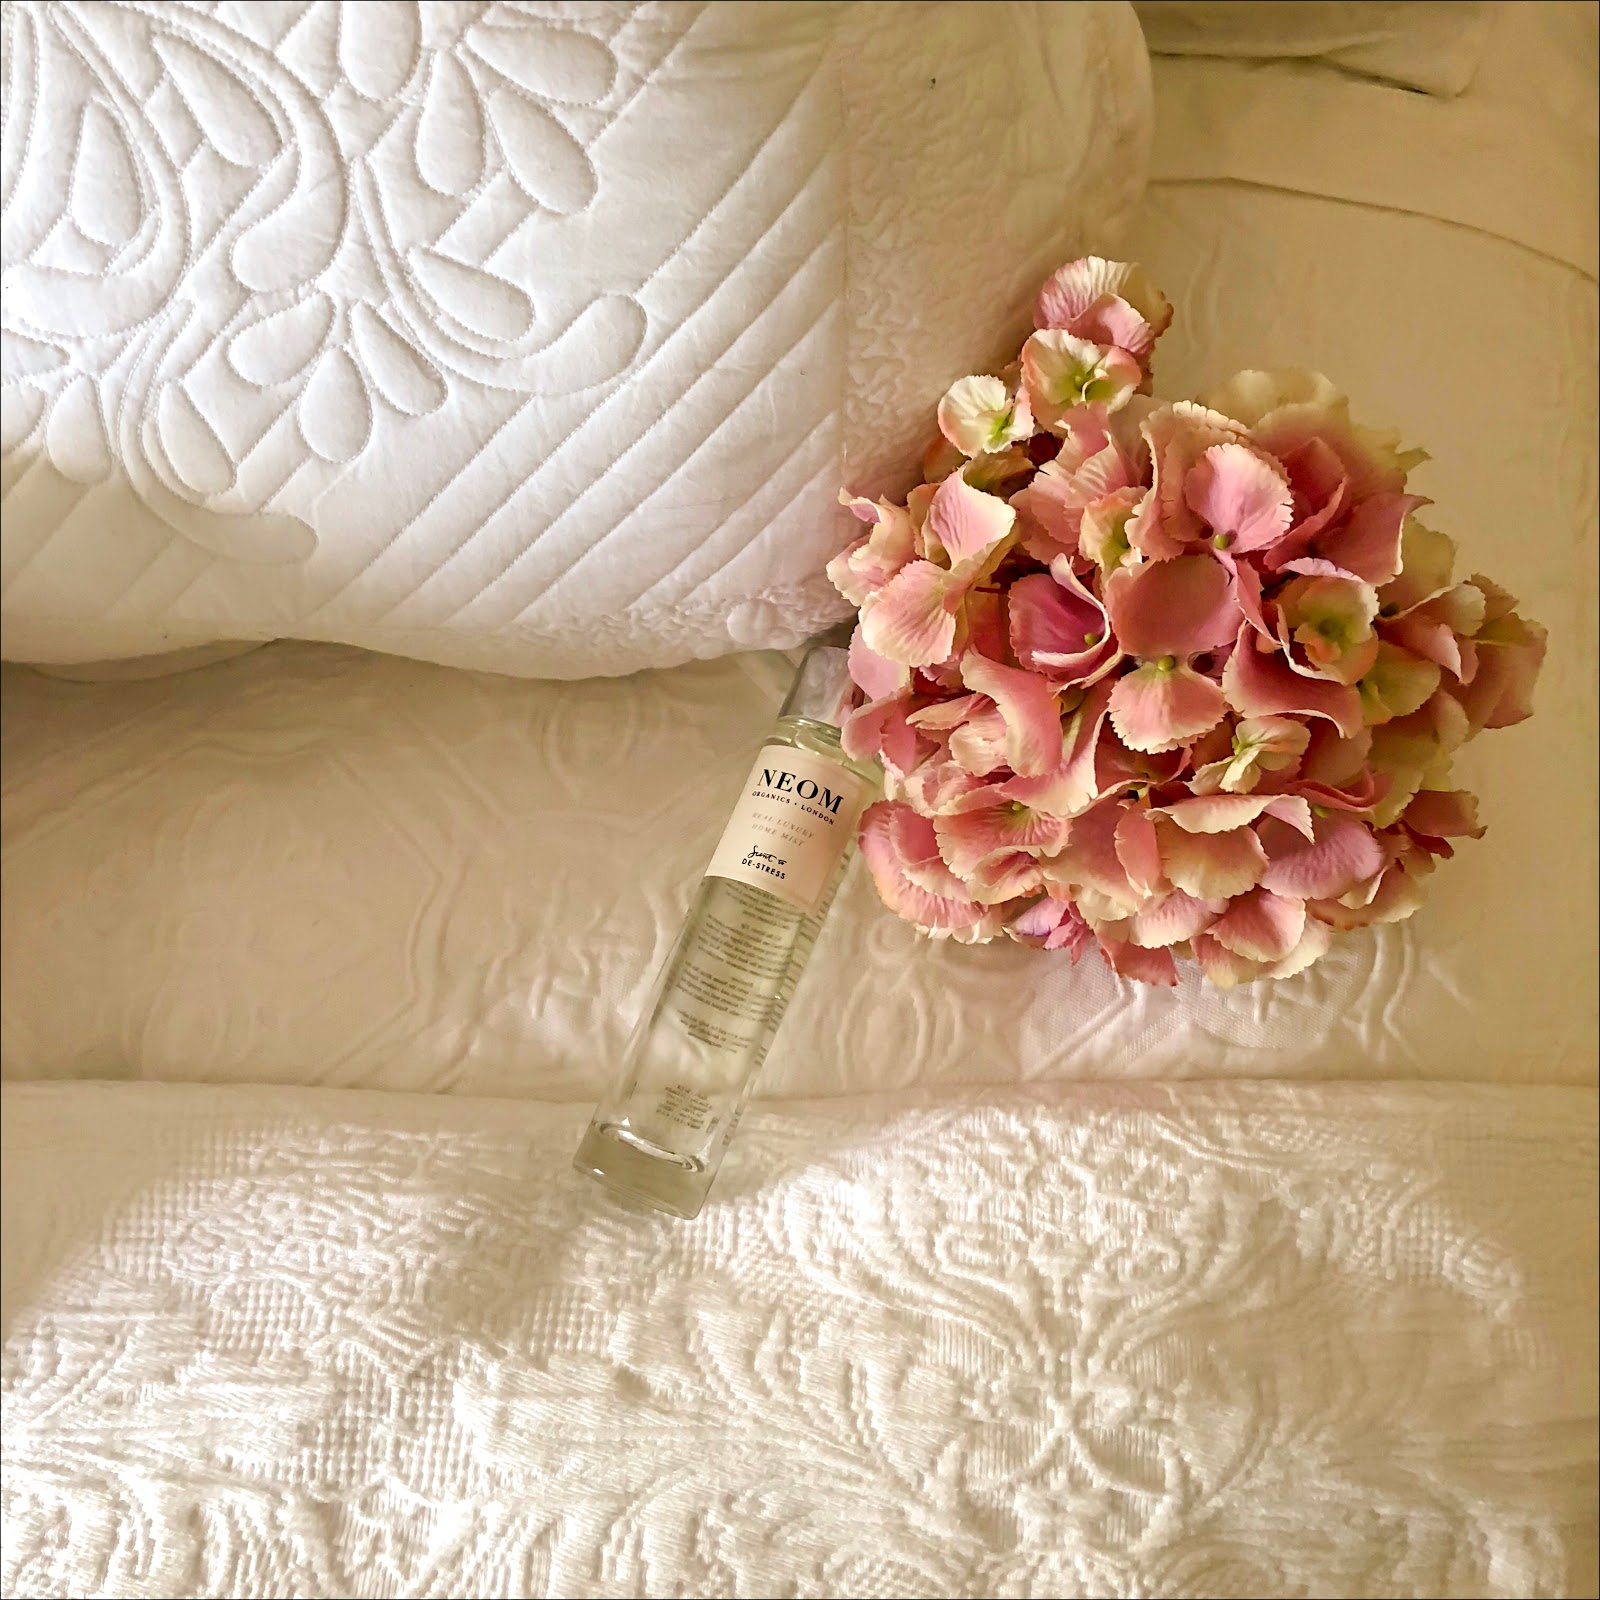 my midlife fashion, marks and spencer, marks and spencer neoms perfect nights sleep pillow mist, marks and spencer trapunto cushion, marks and spencer pure cotton floral matelasse bedding